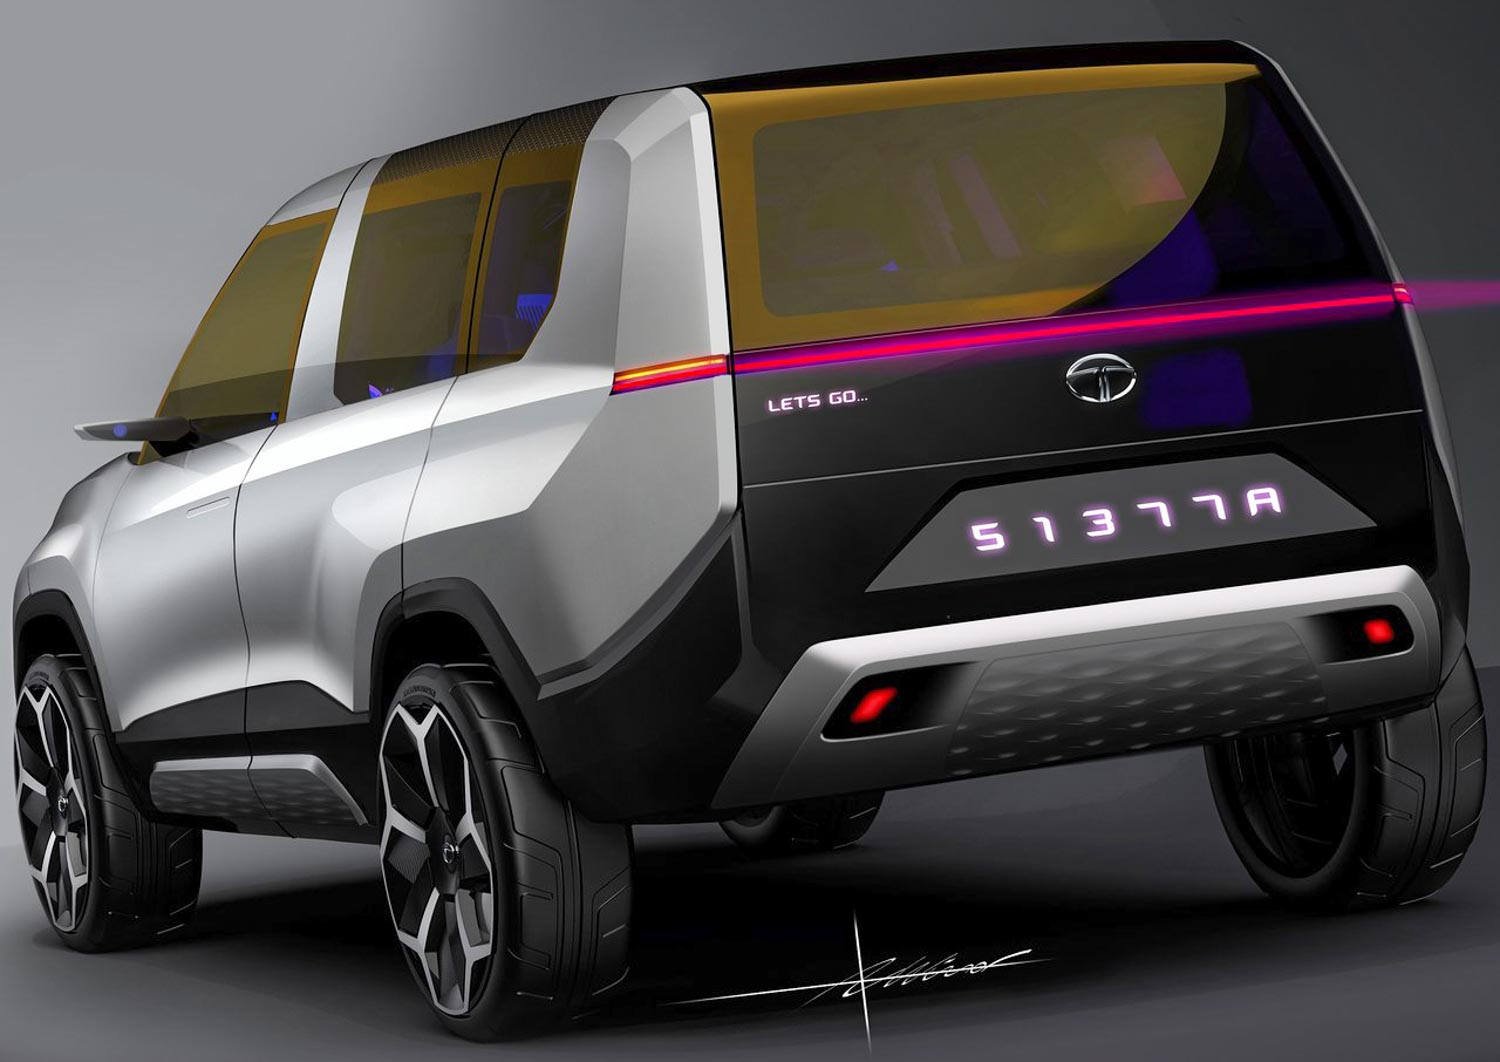 7 Things You Need To Know About The Tata Sierra EV Concept